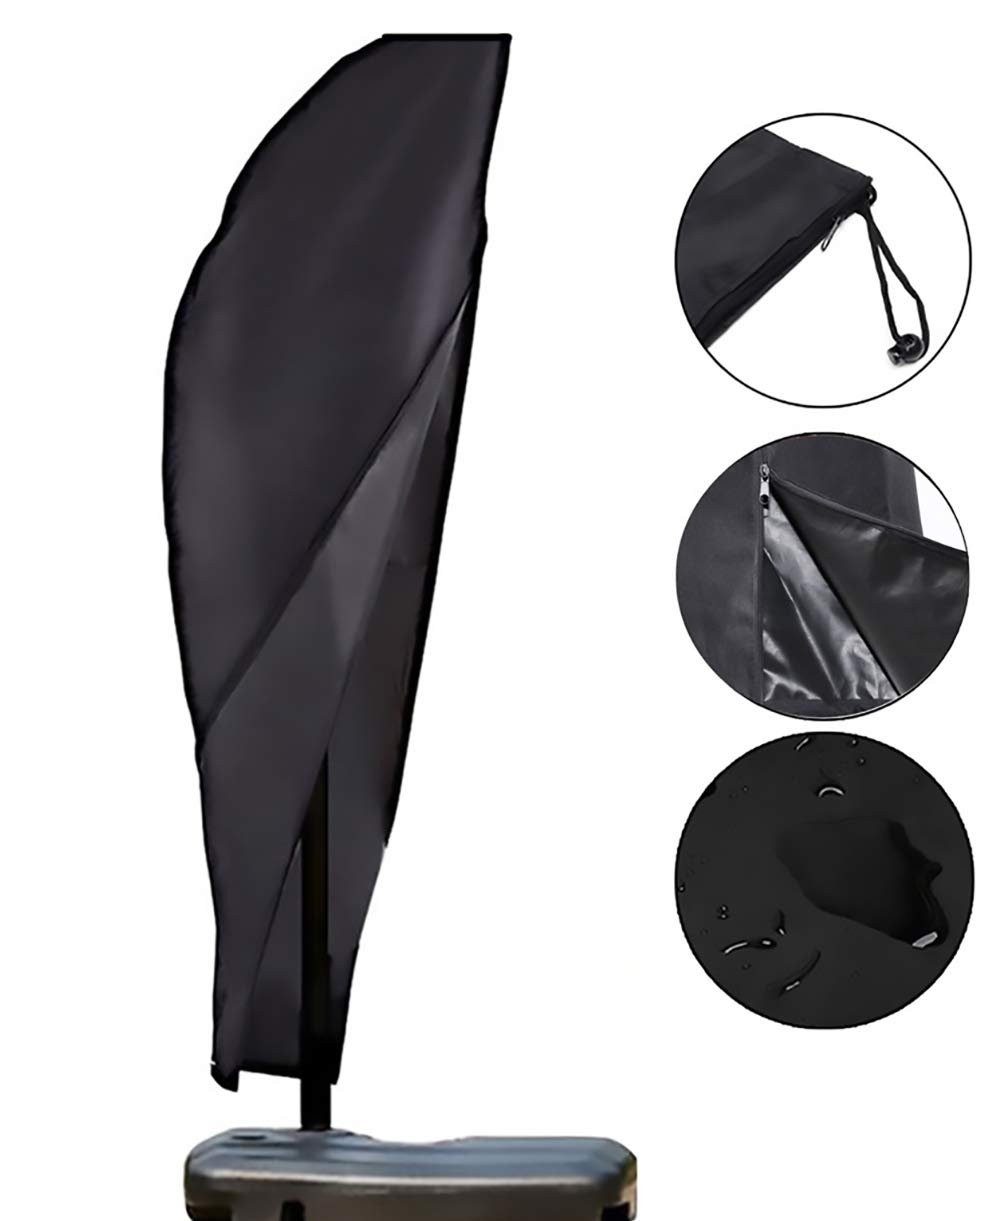 OOFIT Garden Parasol Cover Cantilever Umbrella Cover Waterpoof 600D oxford for Protecting Garden Umbrella 265 * 40 * 70 * 50cm with Zip and Drawstring - Black